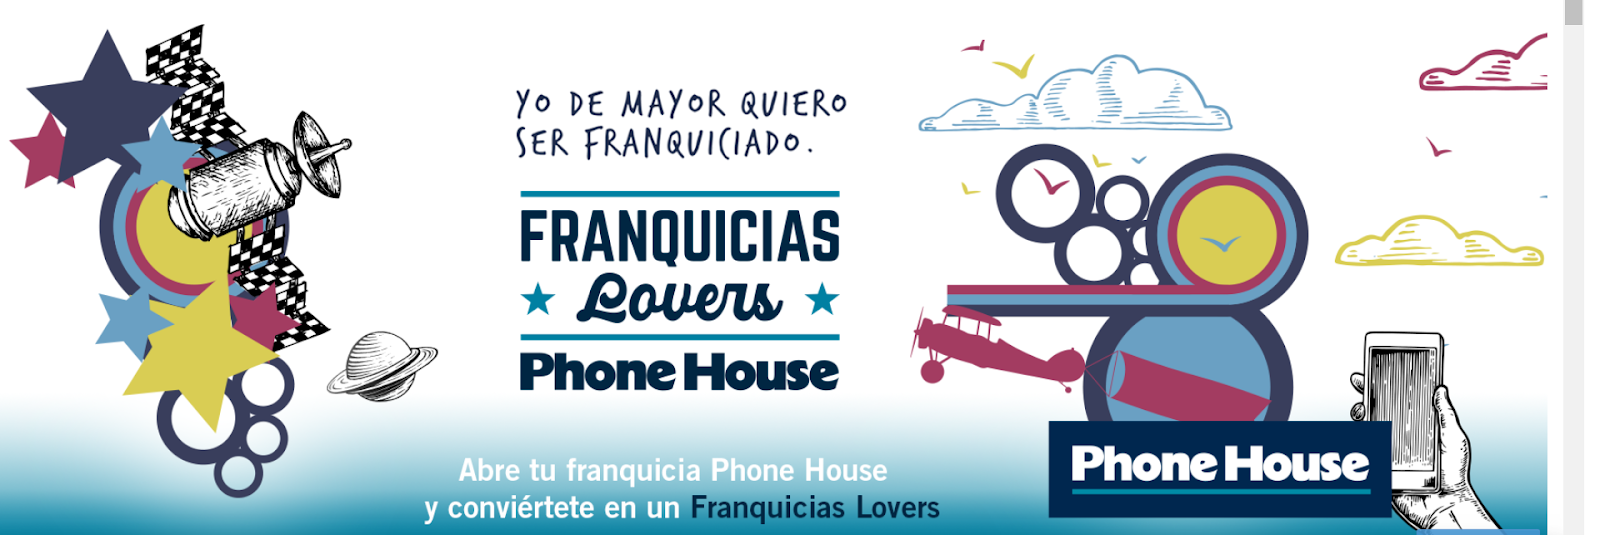 Condiciones franquicia Phone House